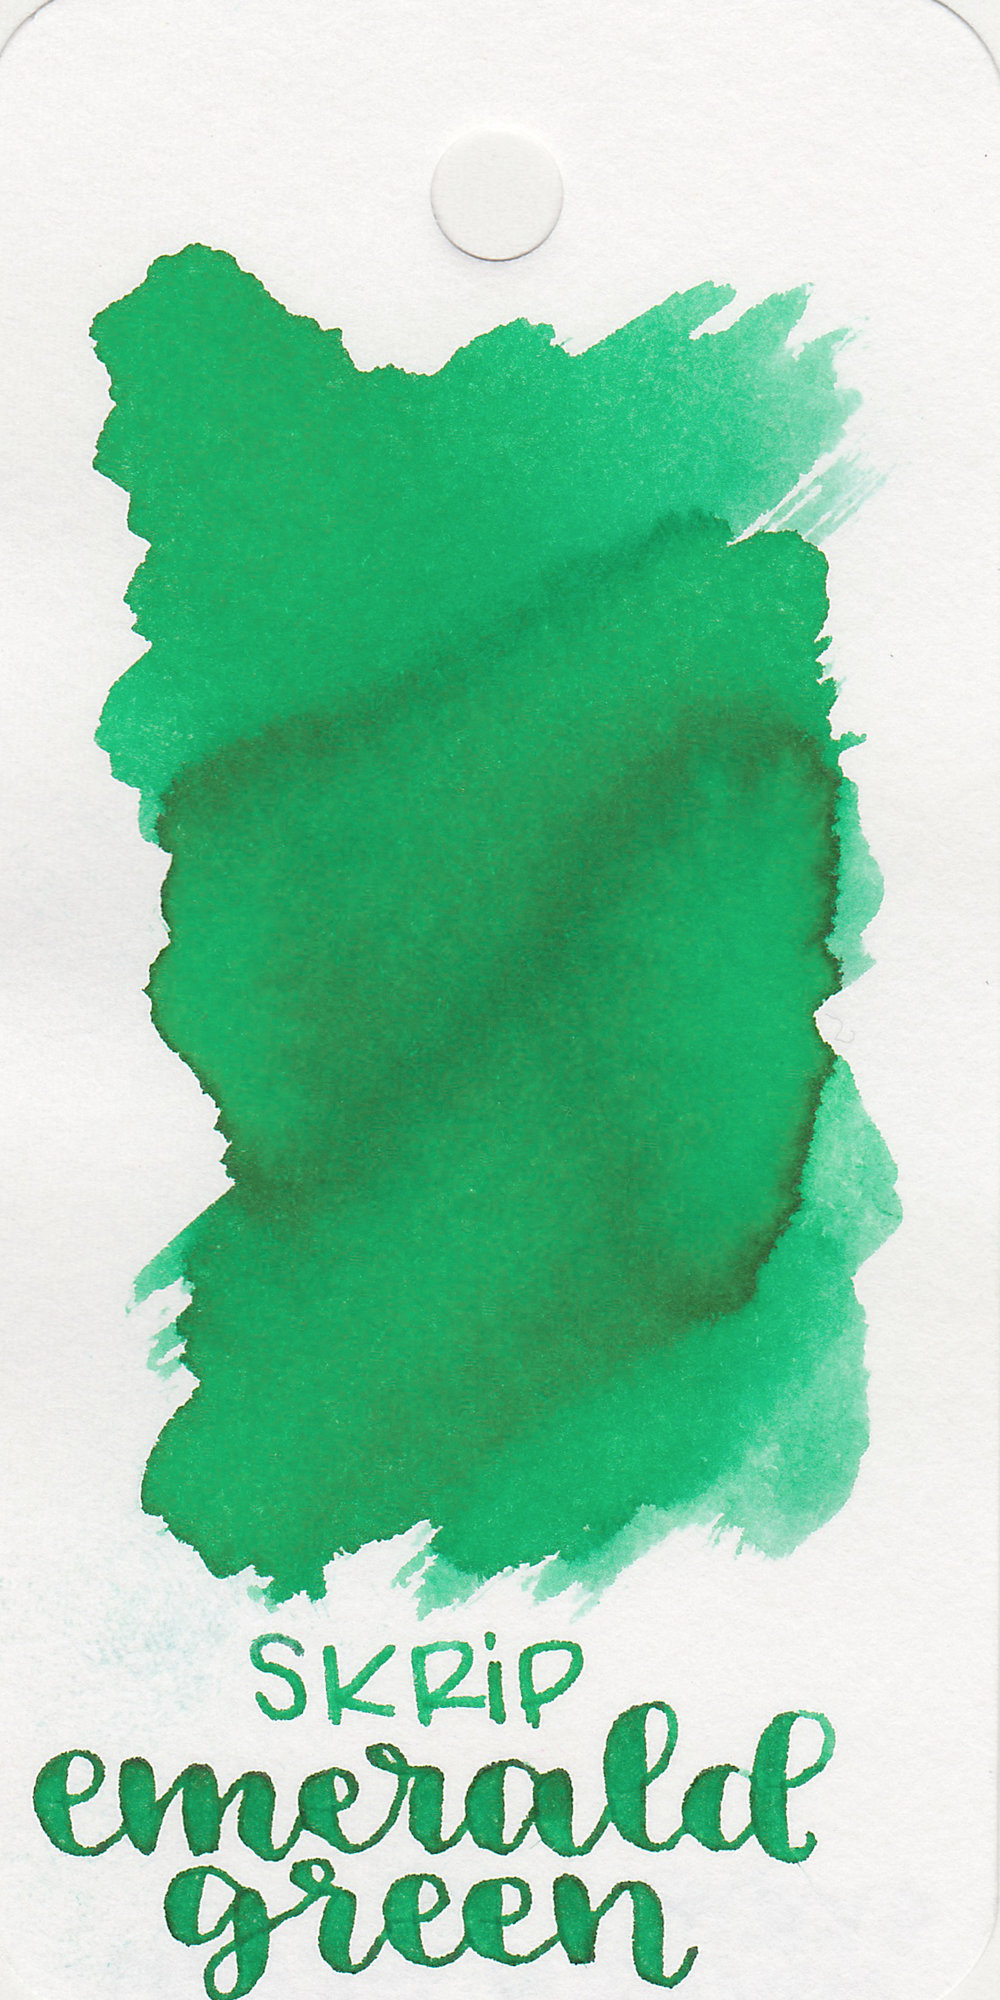 The color: - Emerald Green is a medium bright green.